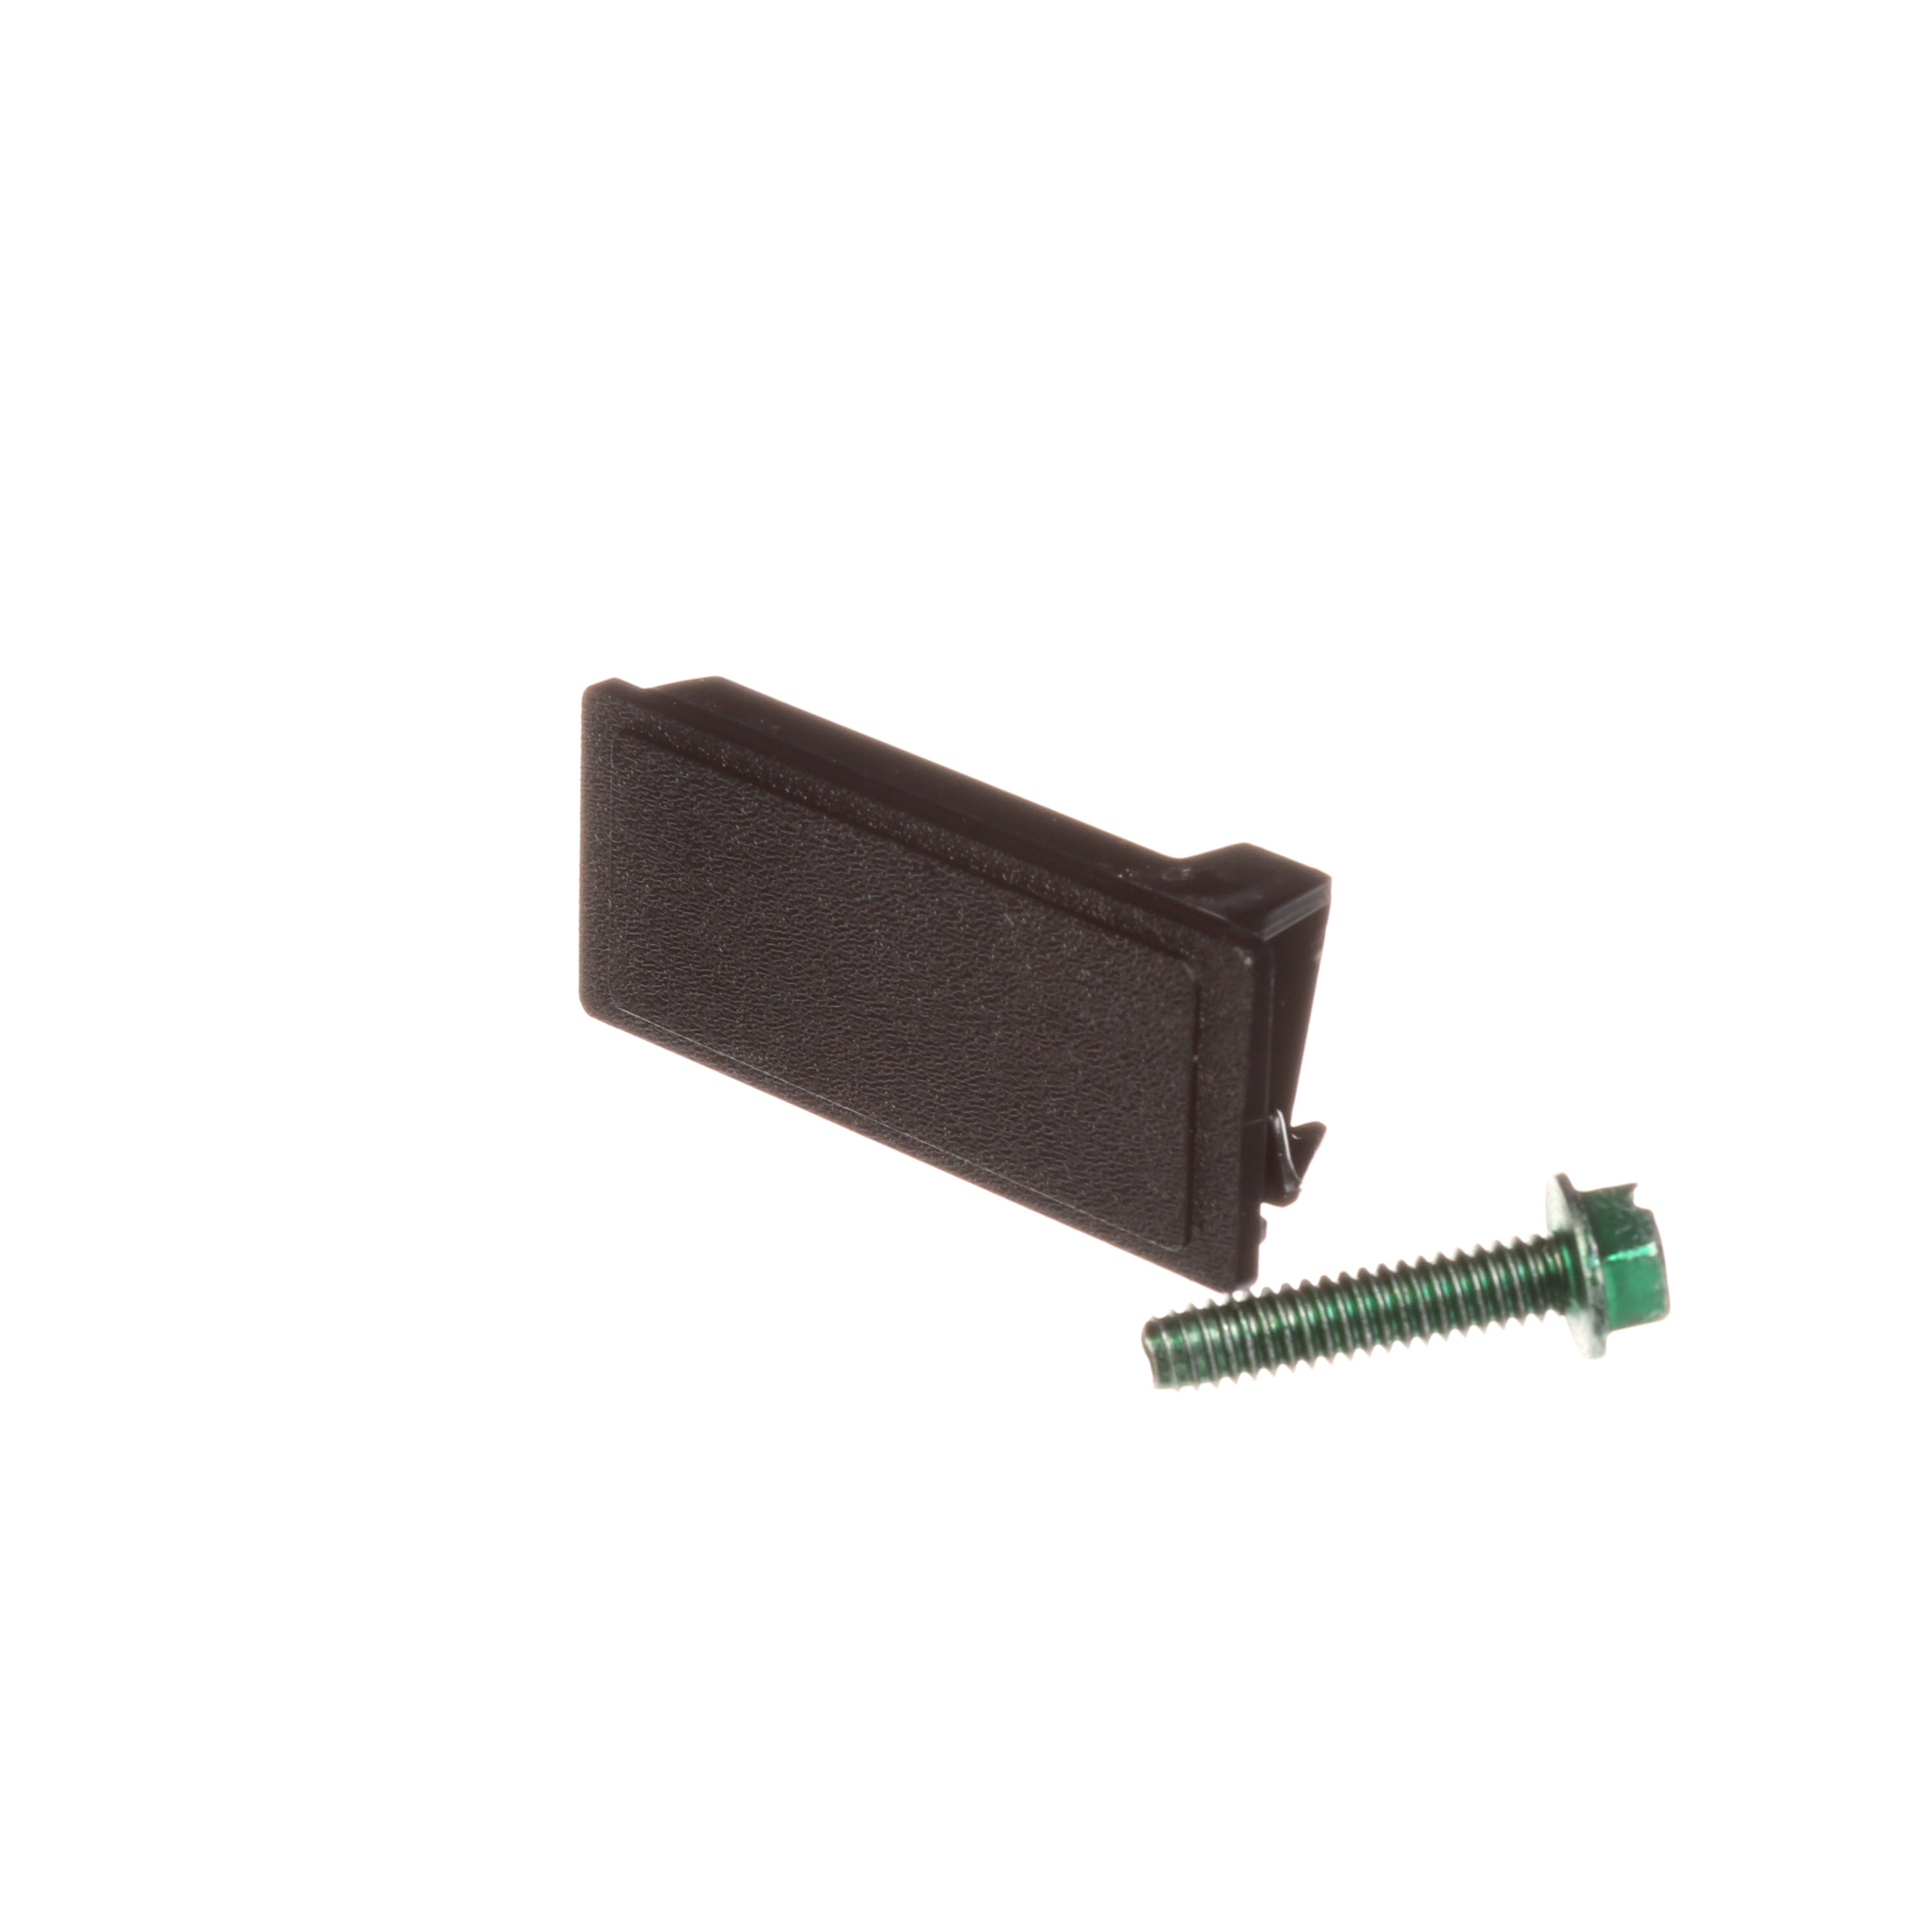 Siemens,BK1,Siemens BK1 Bonding Kit, For Use With 400 A Original P1 Panels/11-A-2071-01 Top Level Assembly, 250 A